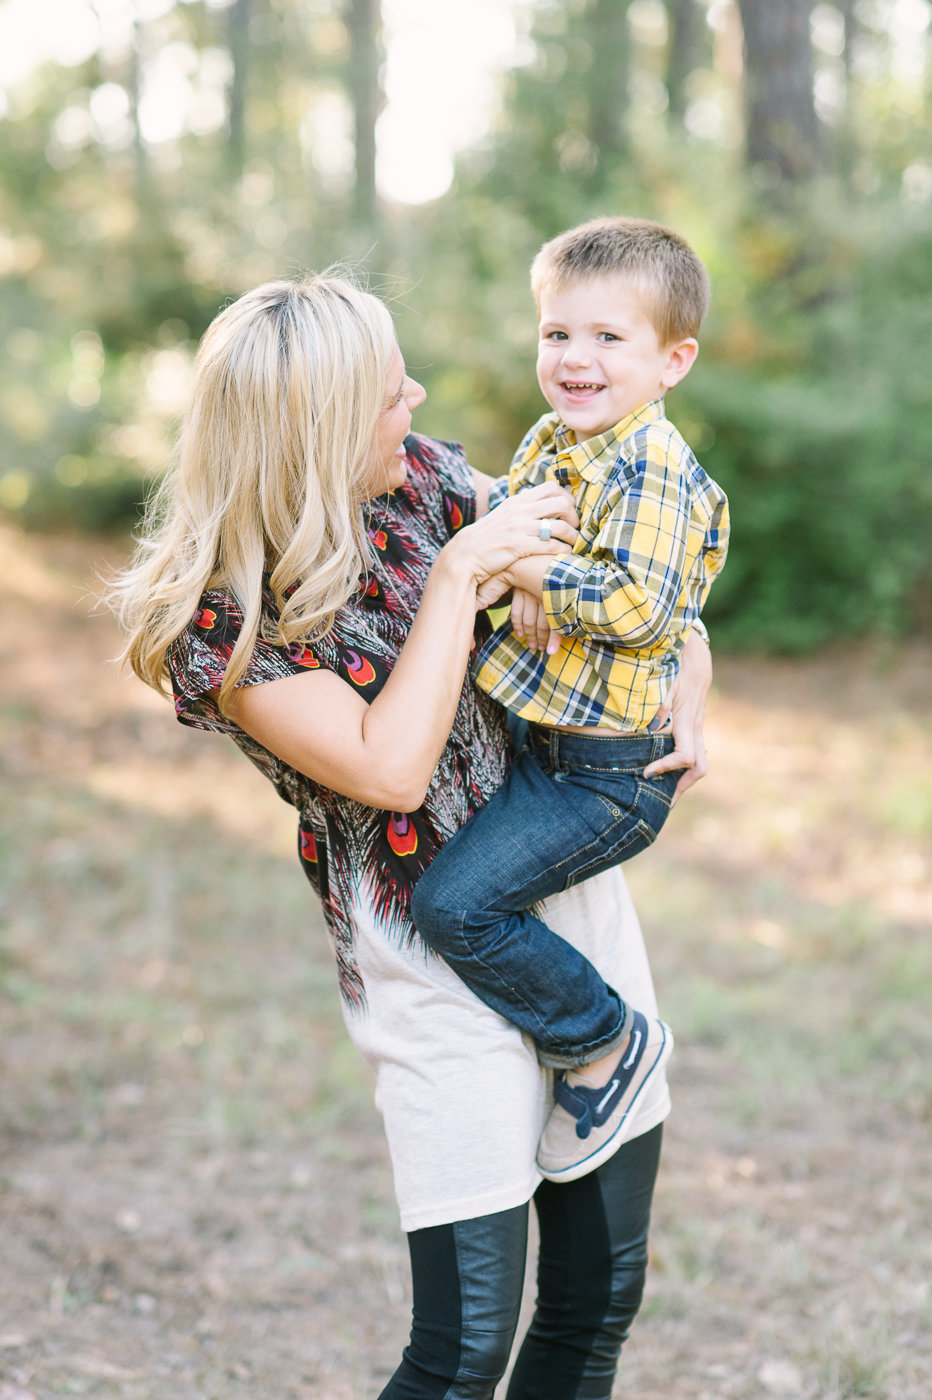 thewoodlands-family-portrait-photographer-21